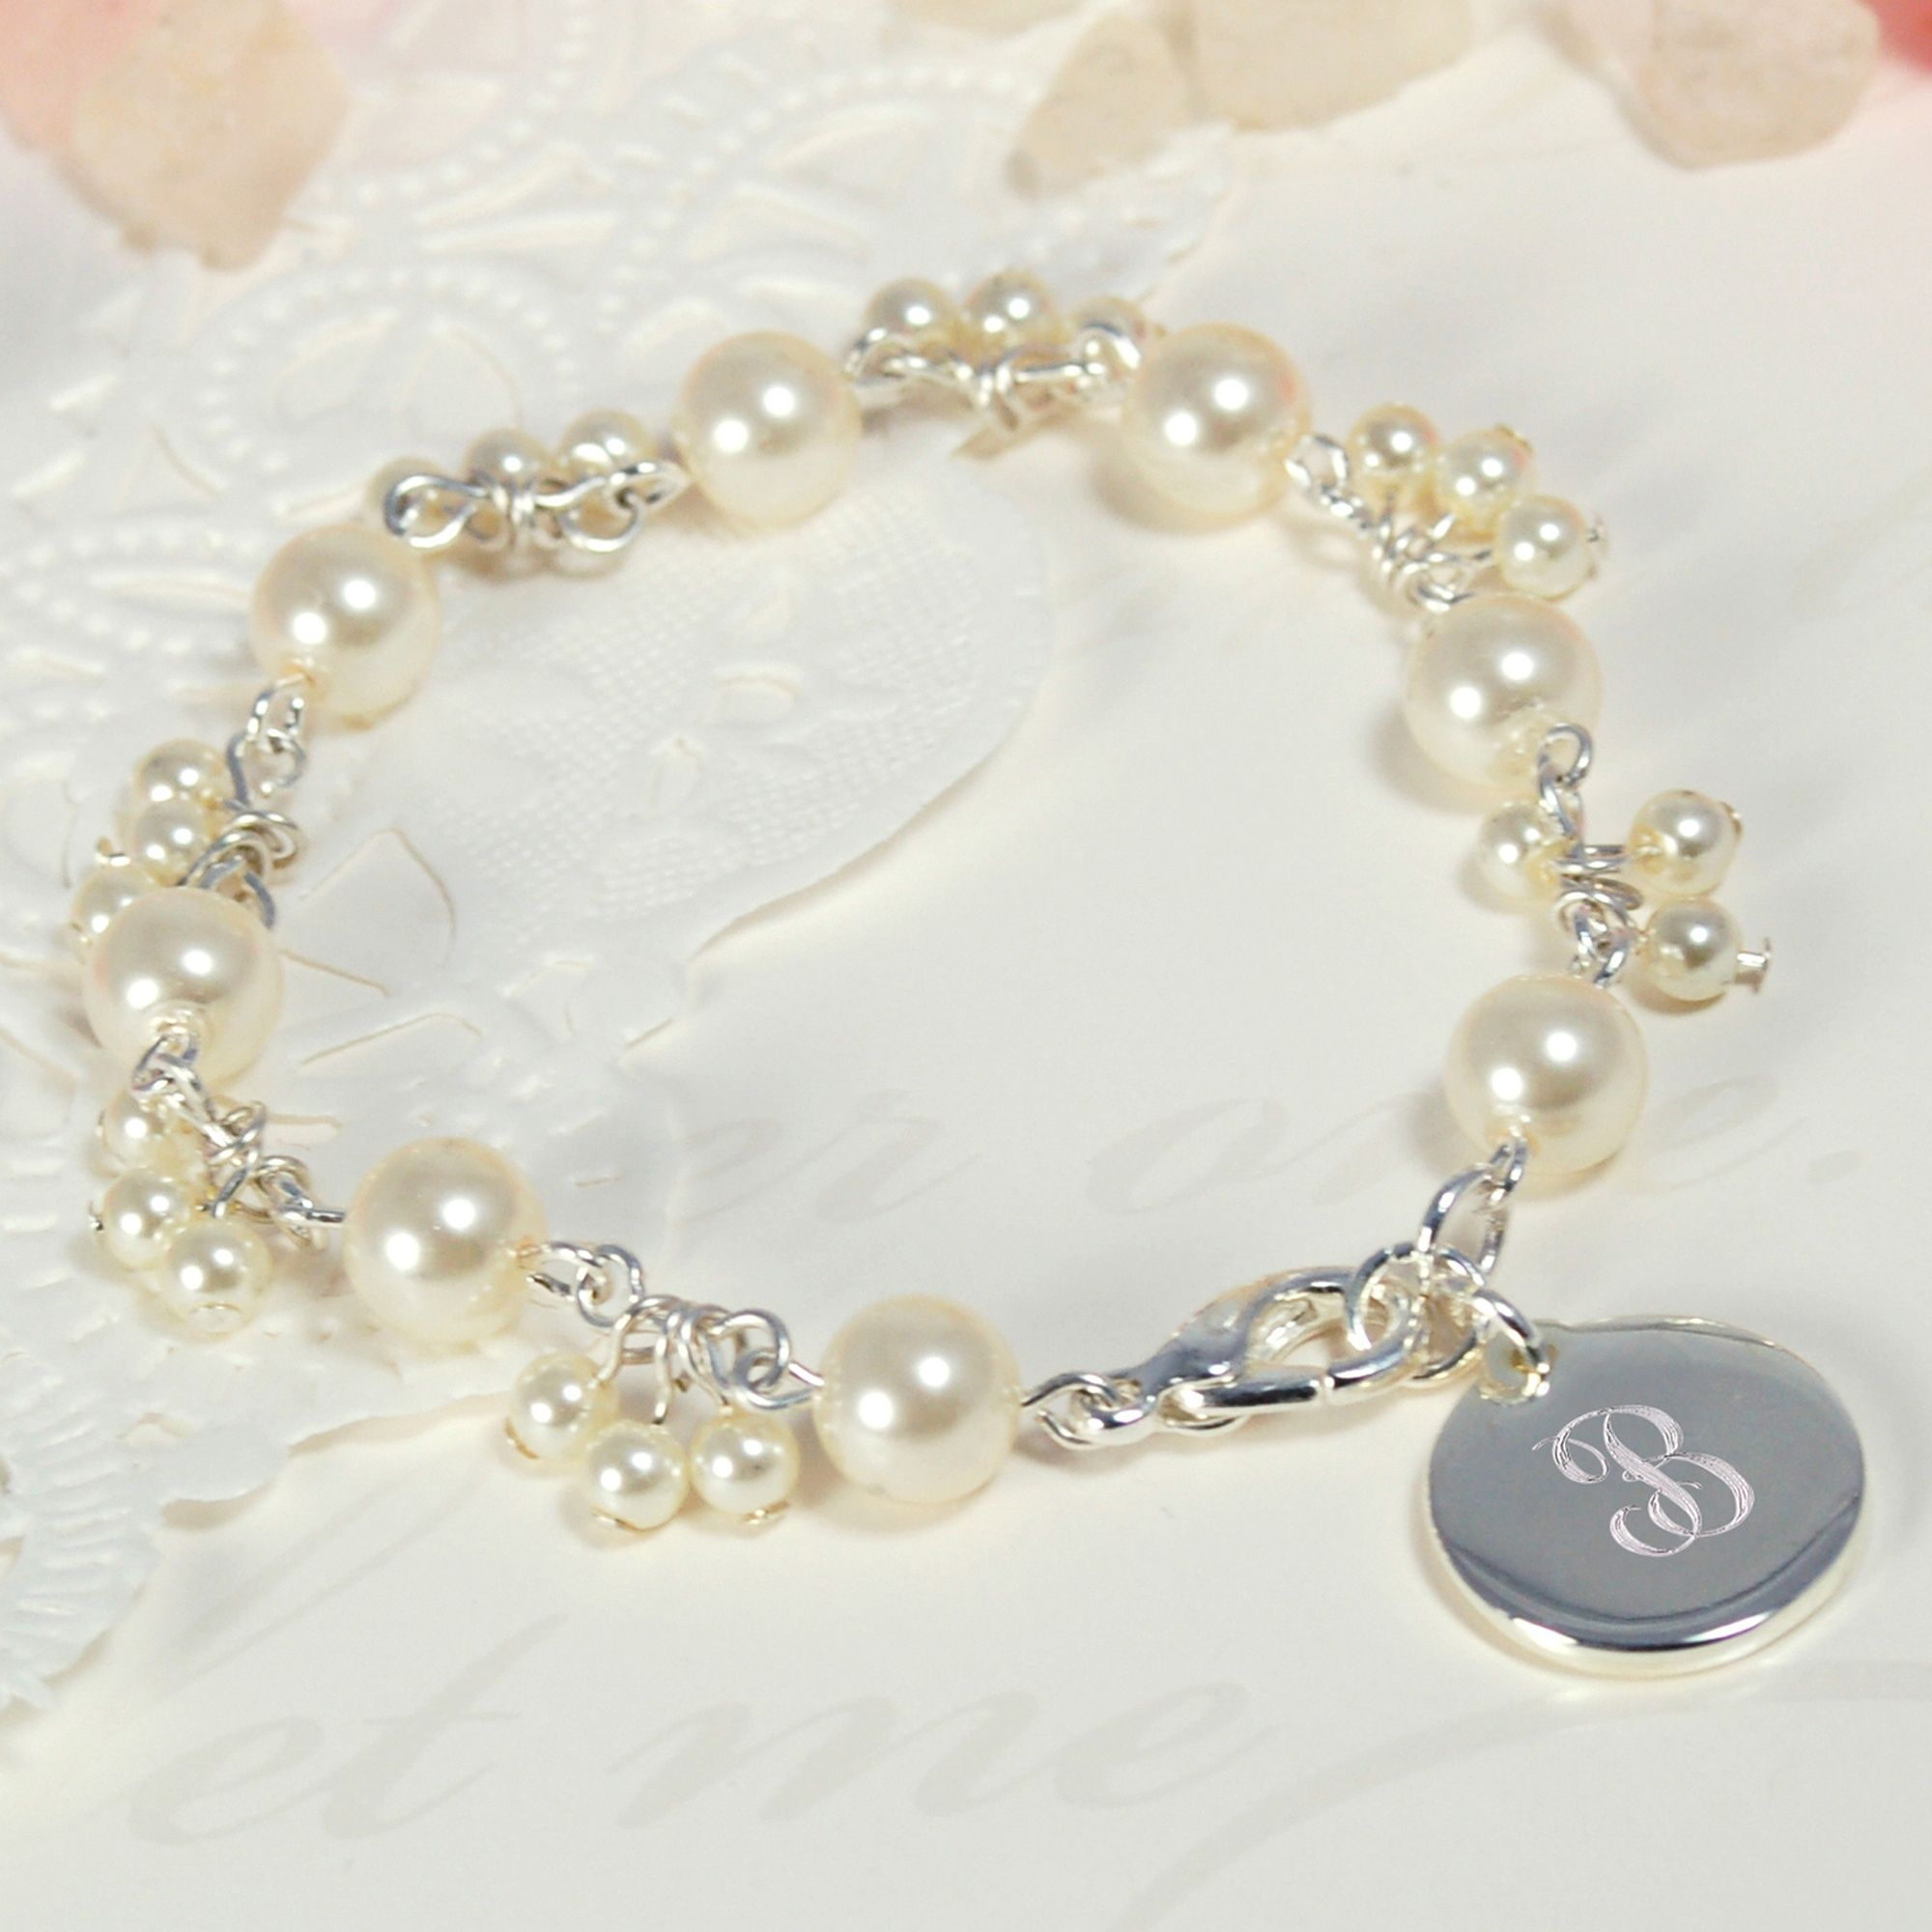 41 Unique Wedding Gift Ideas For Bride And Groom In 2020: Personalized Pearl Cluster Charm Bracelet For Mothers